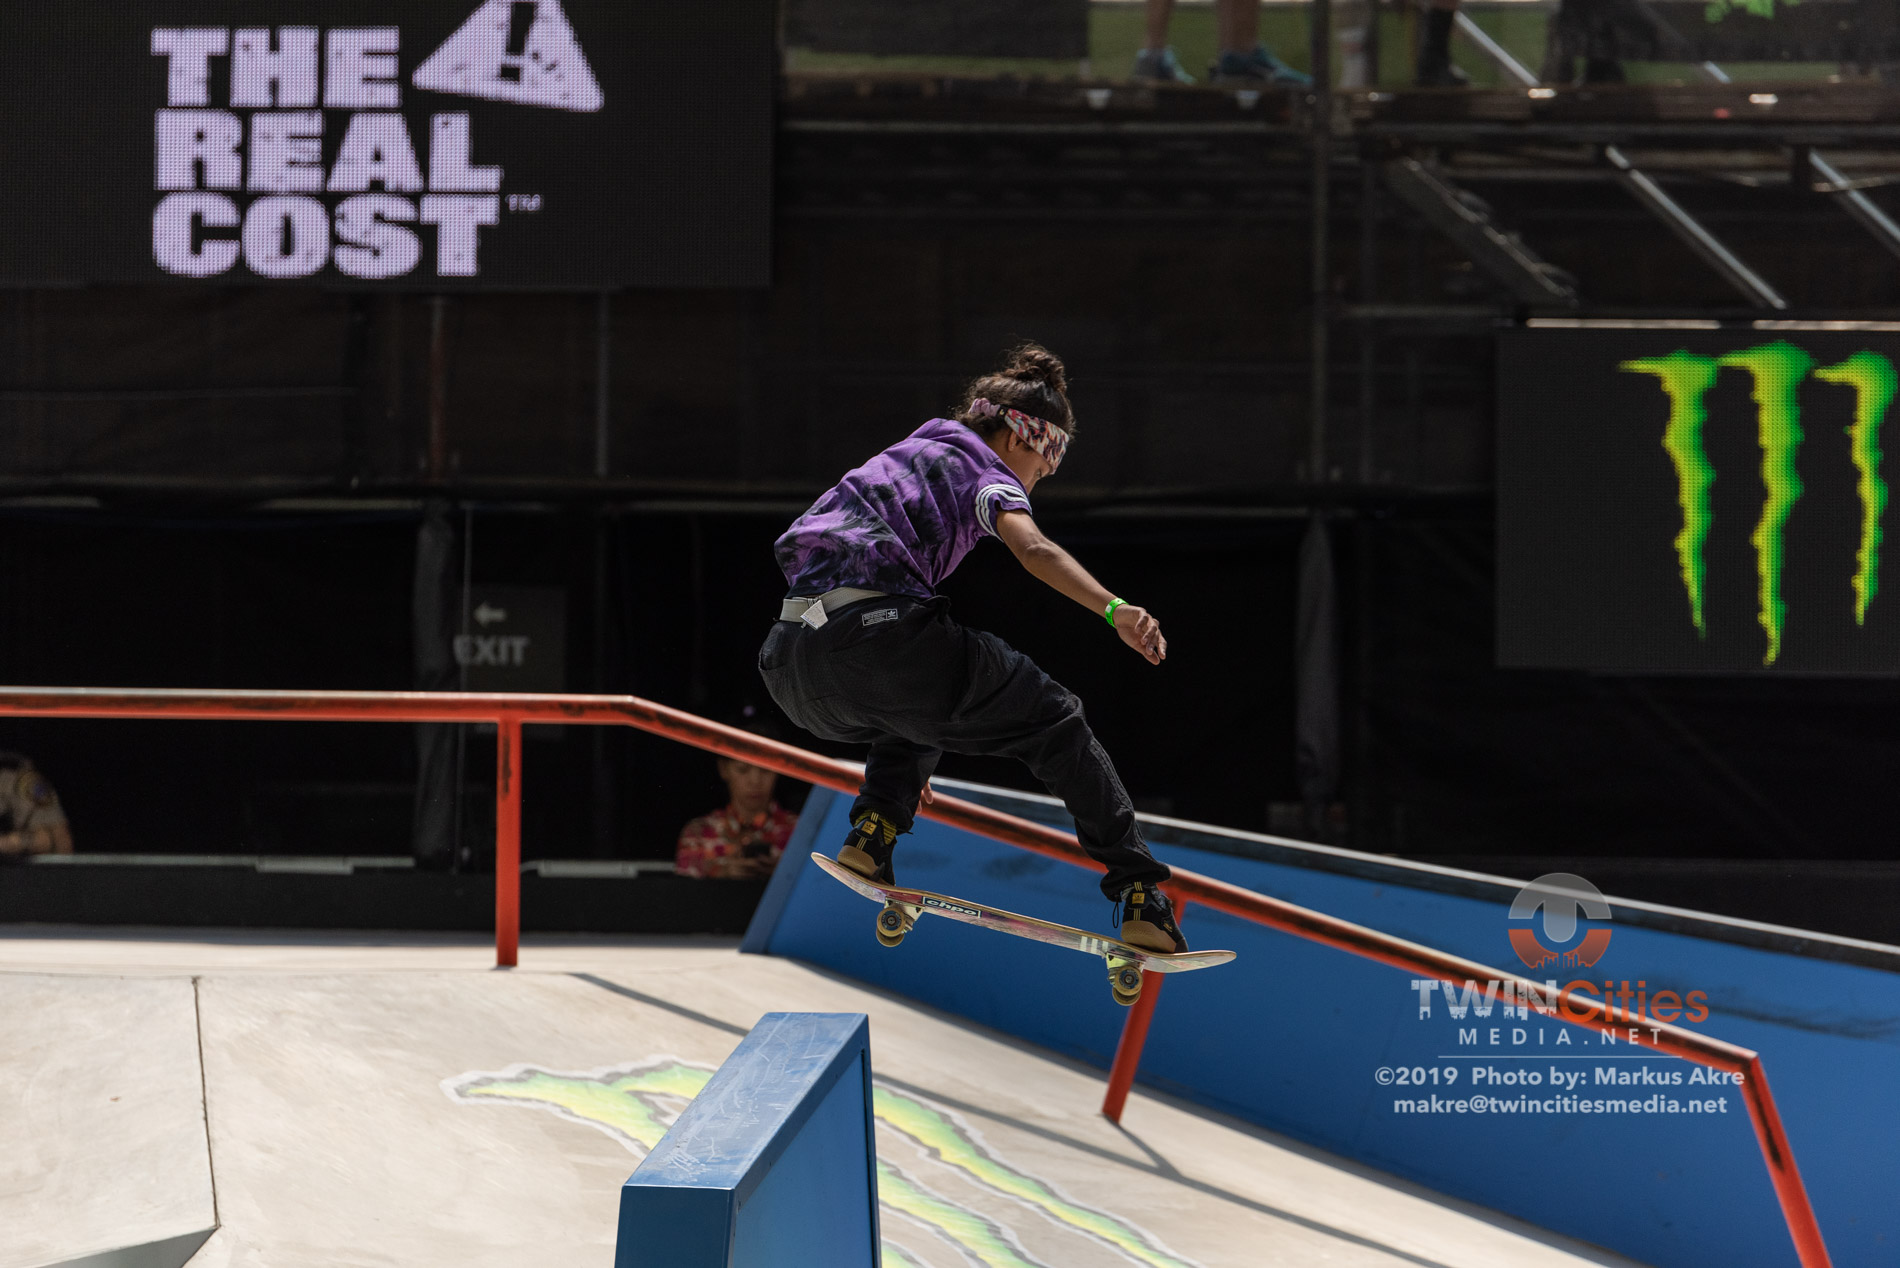 2019-X-Games-Day-4-Women-Skateboard-Street-15